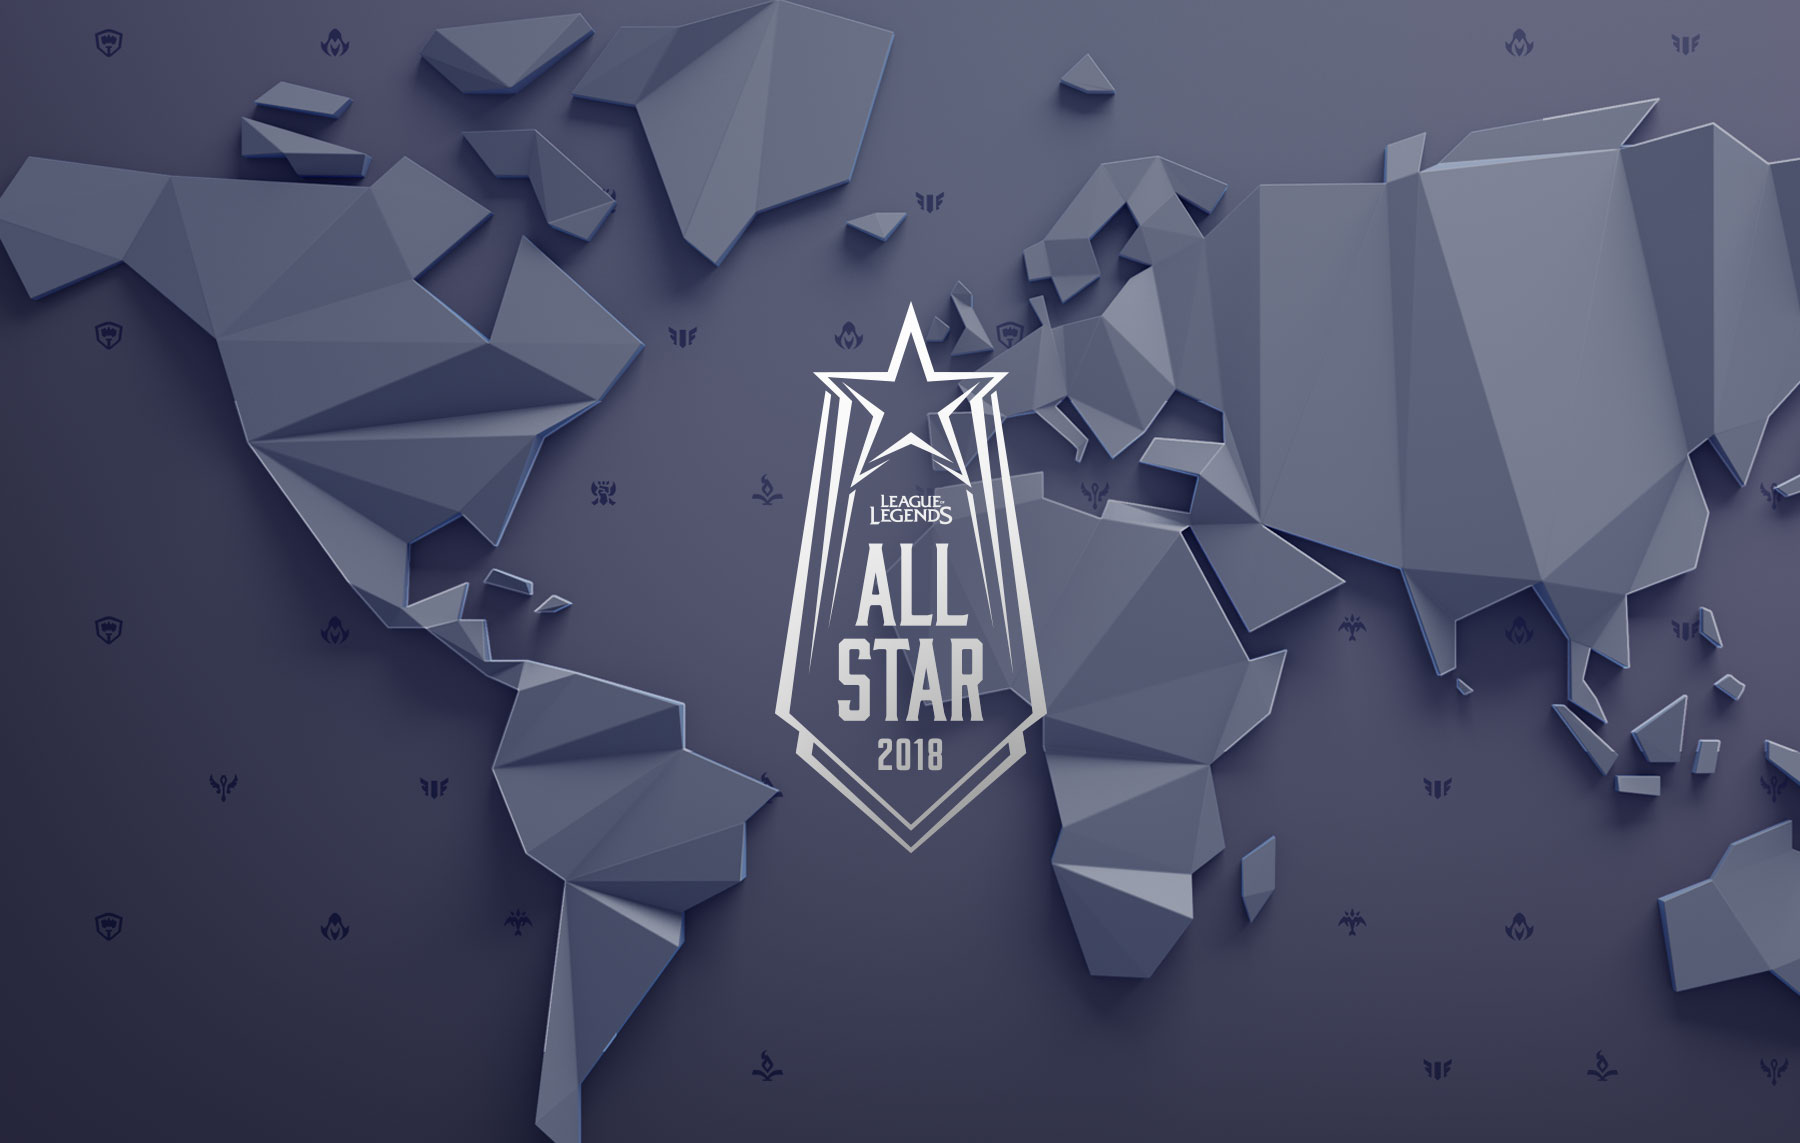 A complete guide to the 2018 League of Legends All-Star event